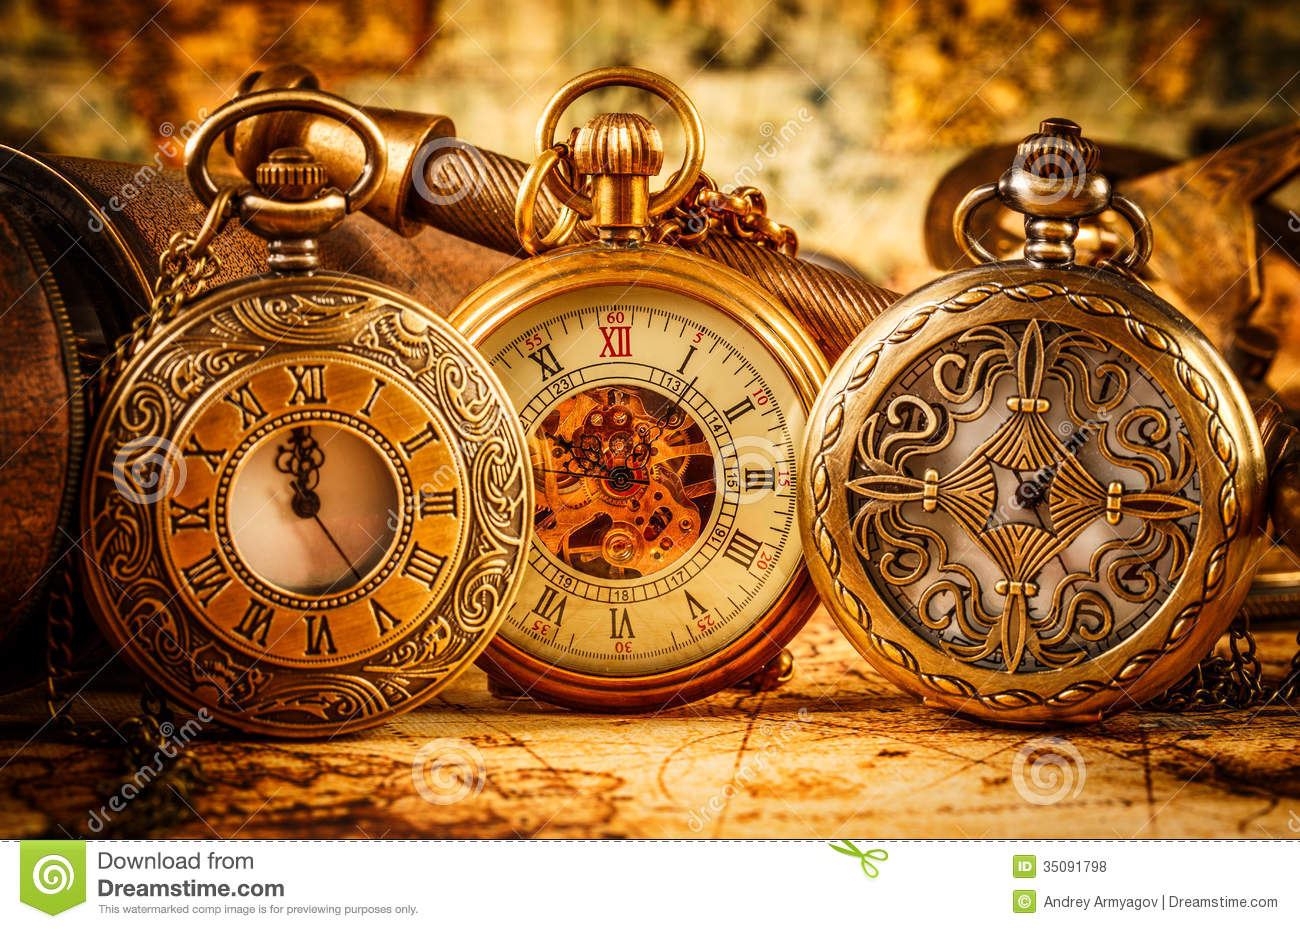 Vintage Pocket Watch Royalty Free Stock Photos Image